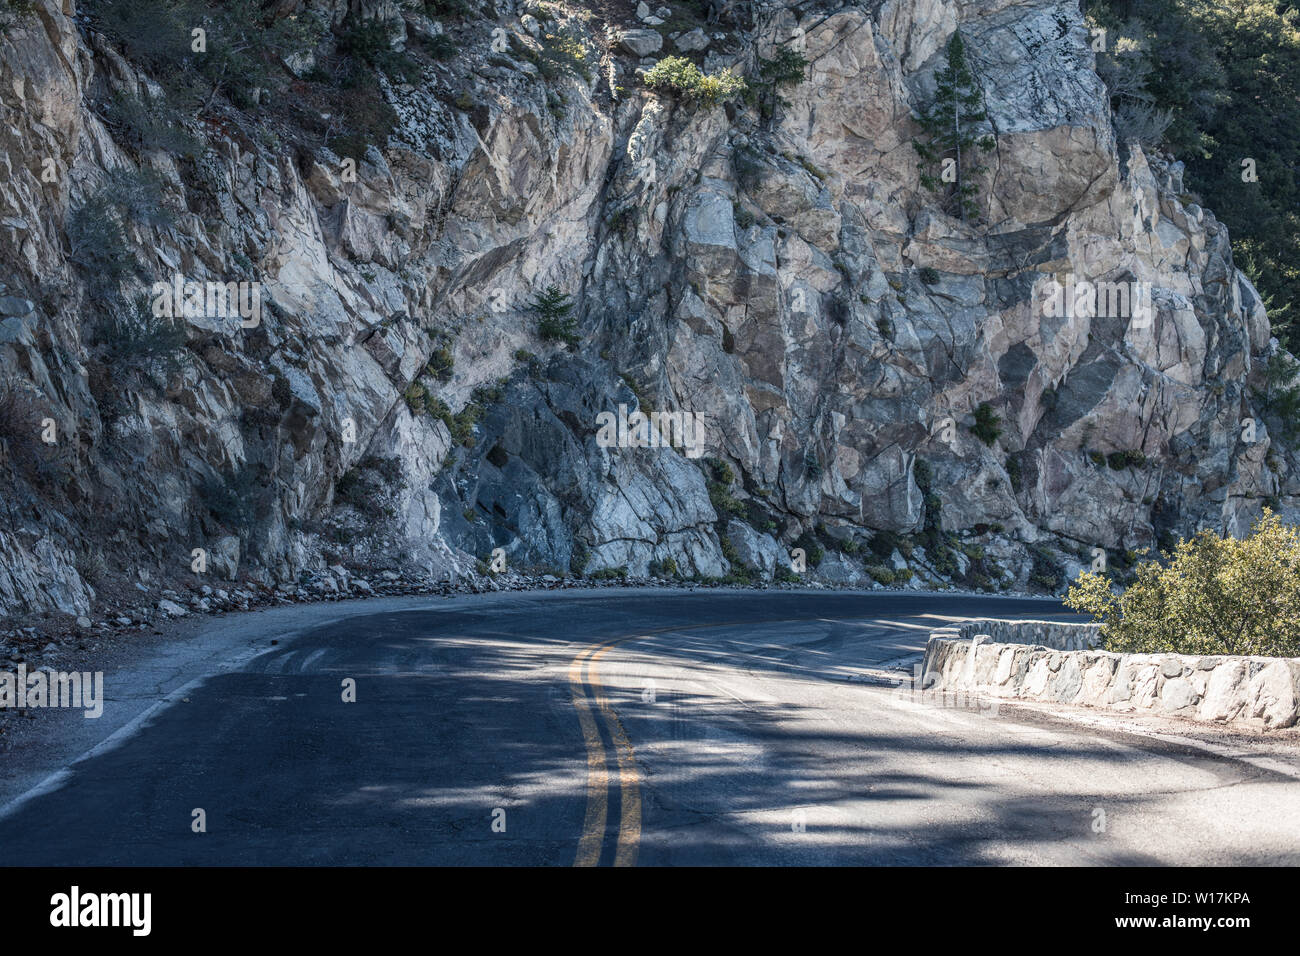 Spectacular serpentine of the rocky road on mountain Wilson, San Gabriel Mountains, California Stock Photo